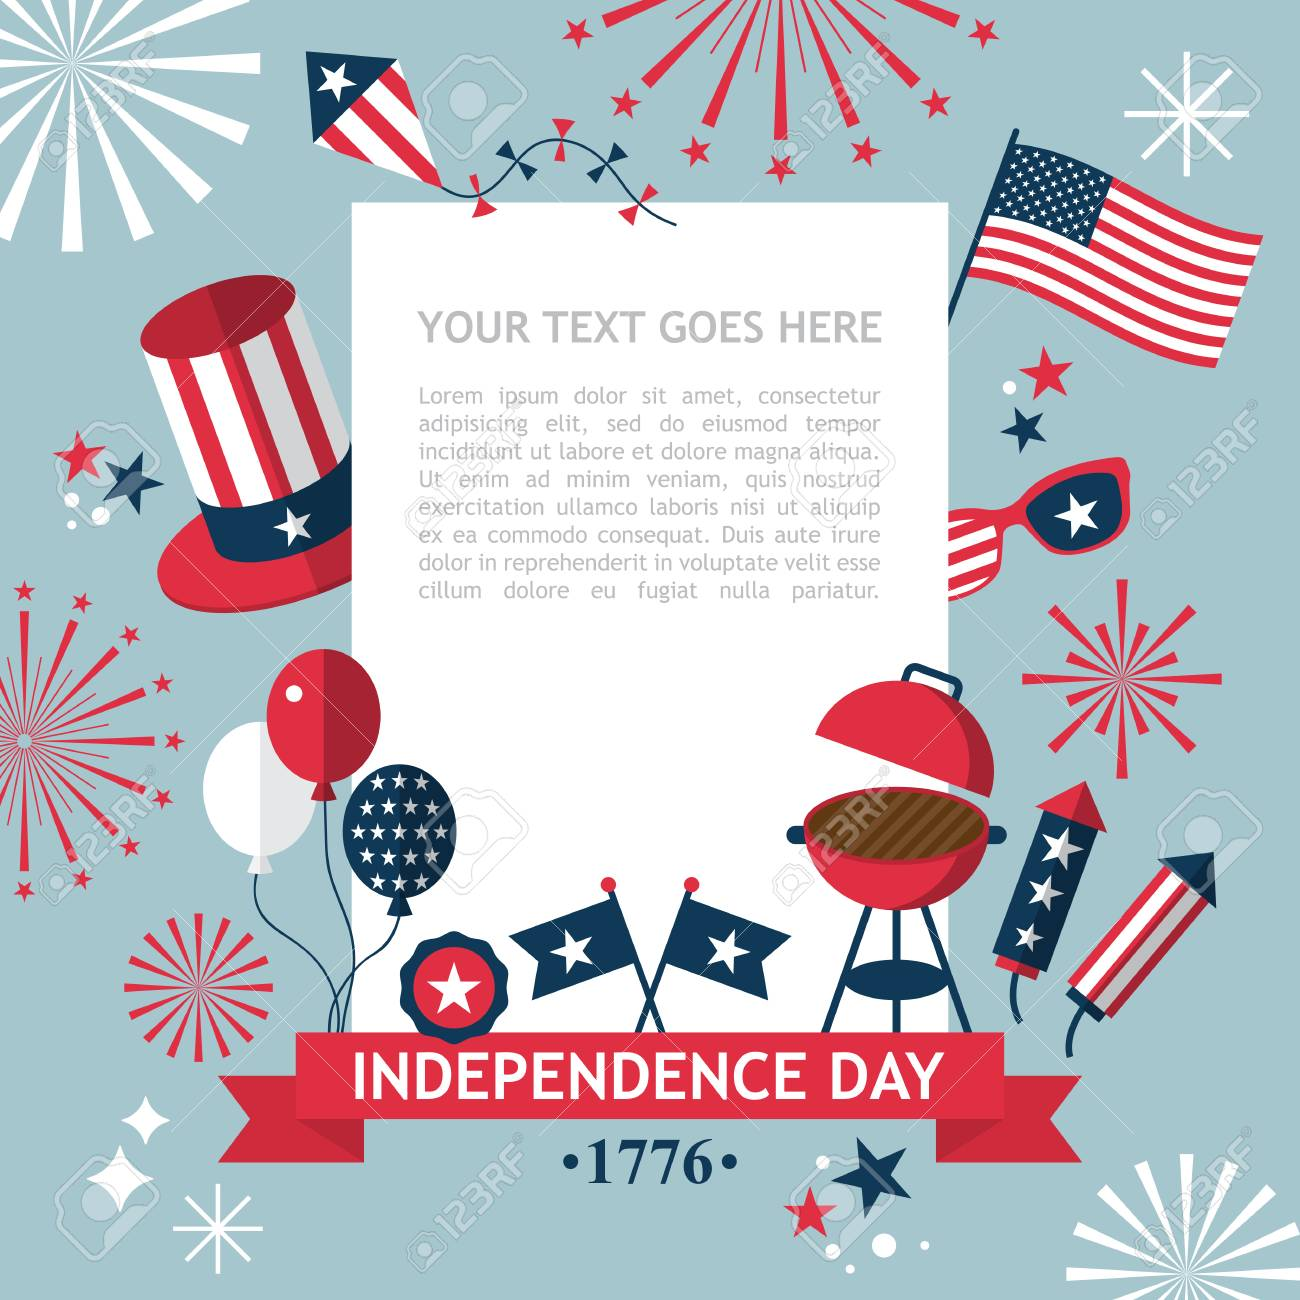 4th of july independence day of the usa party invitation template